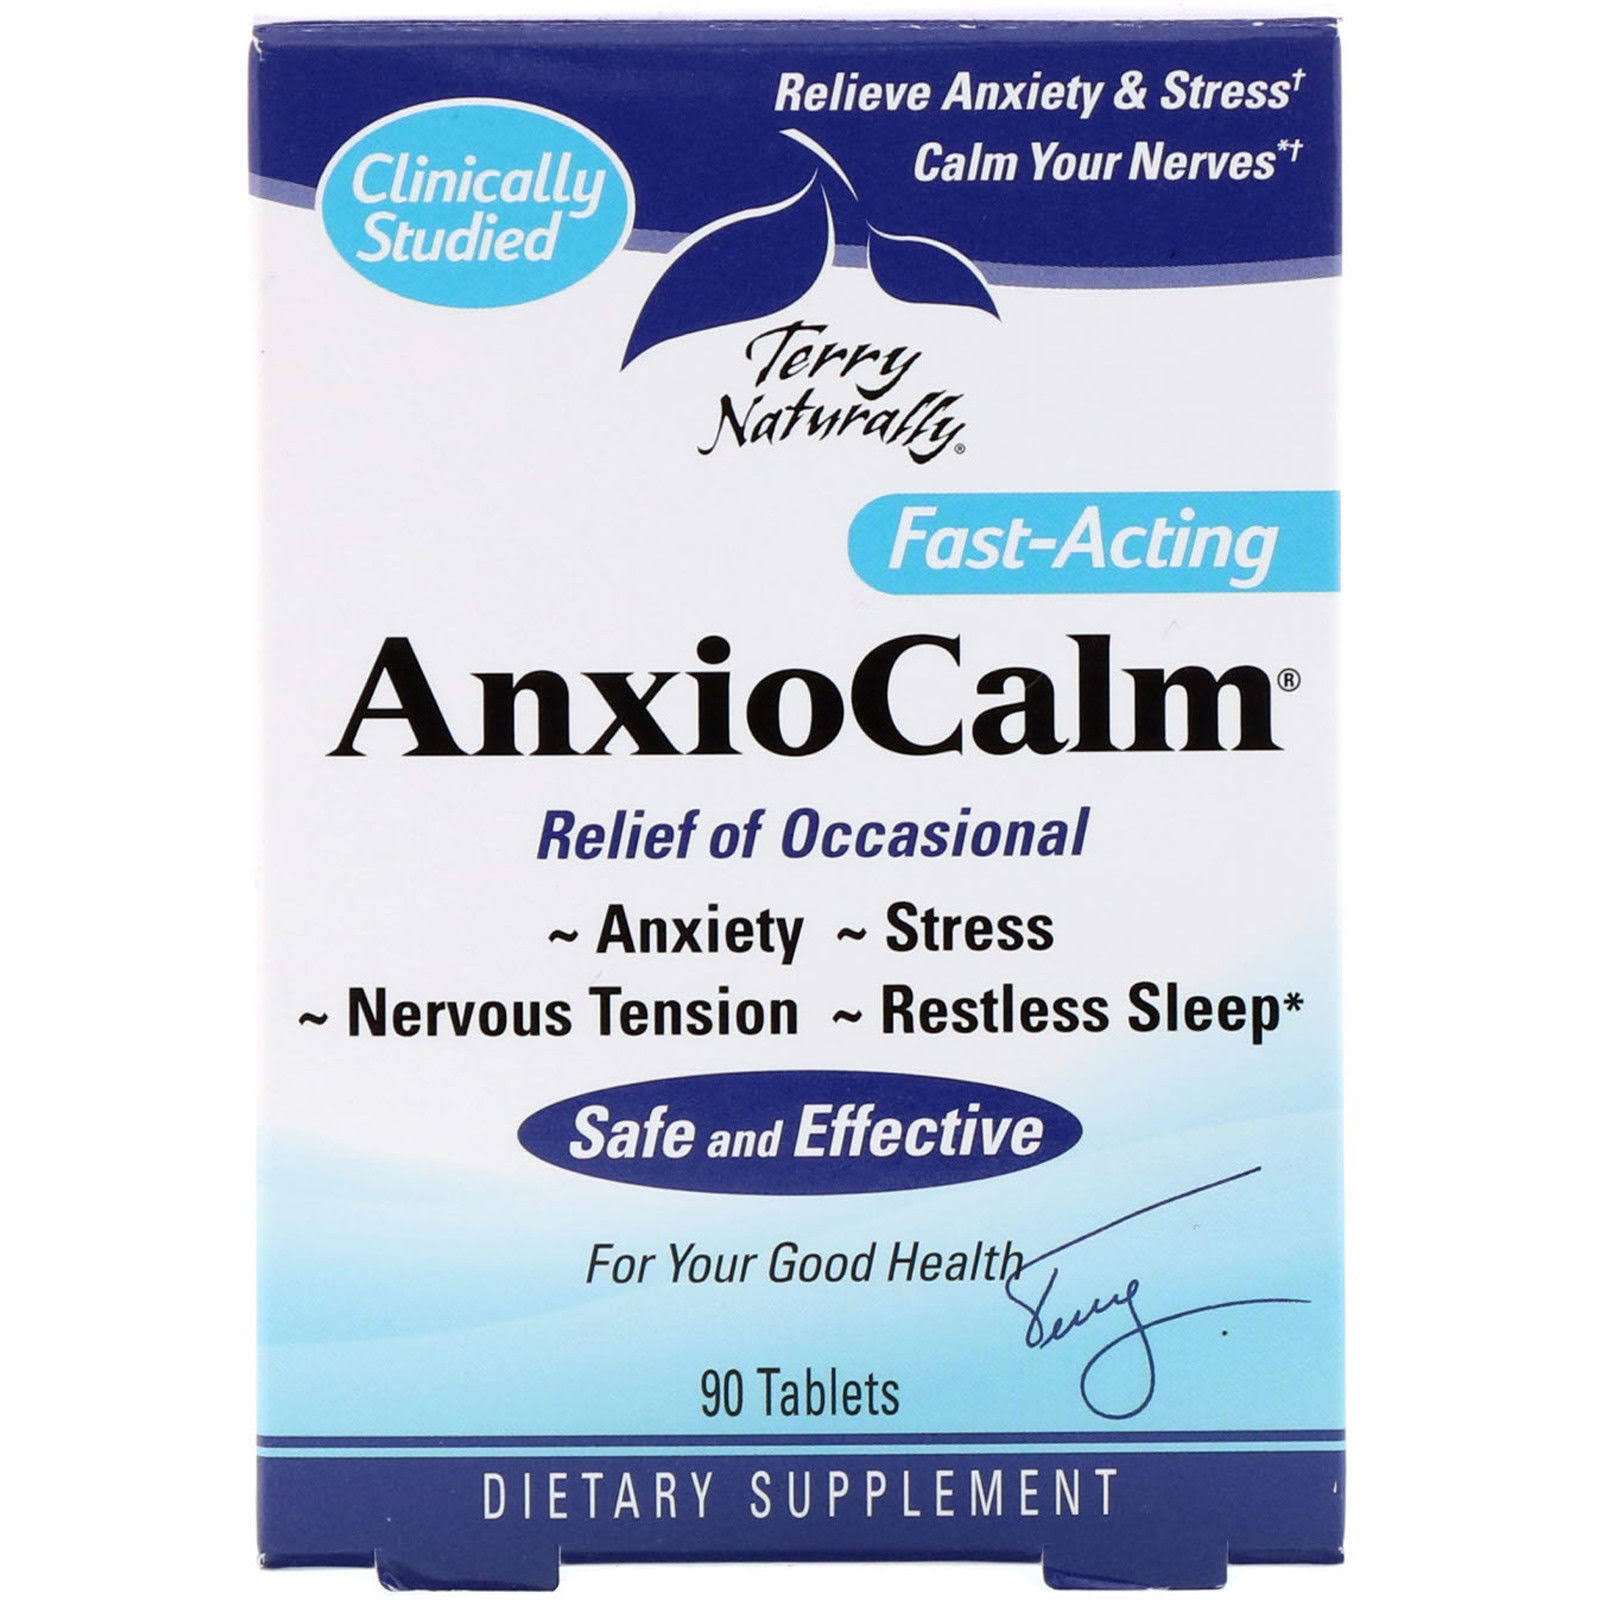 Terry Naturally AnxioCalm - 90 Tablets